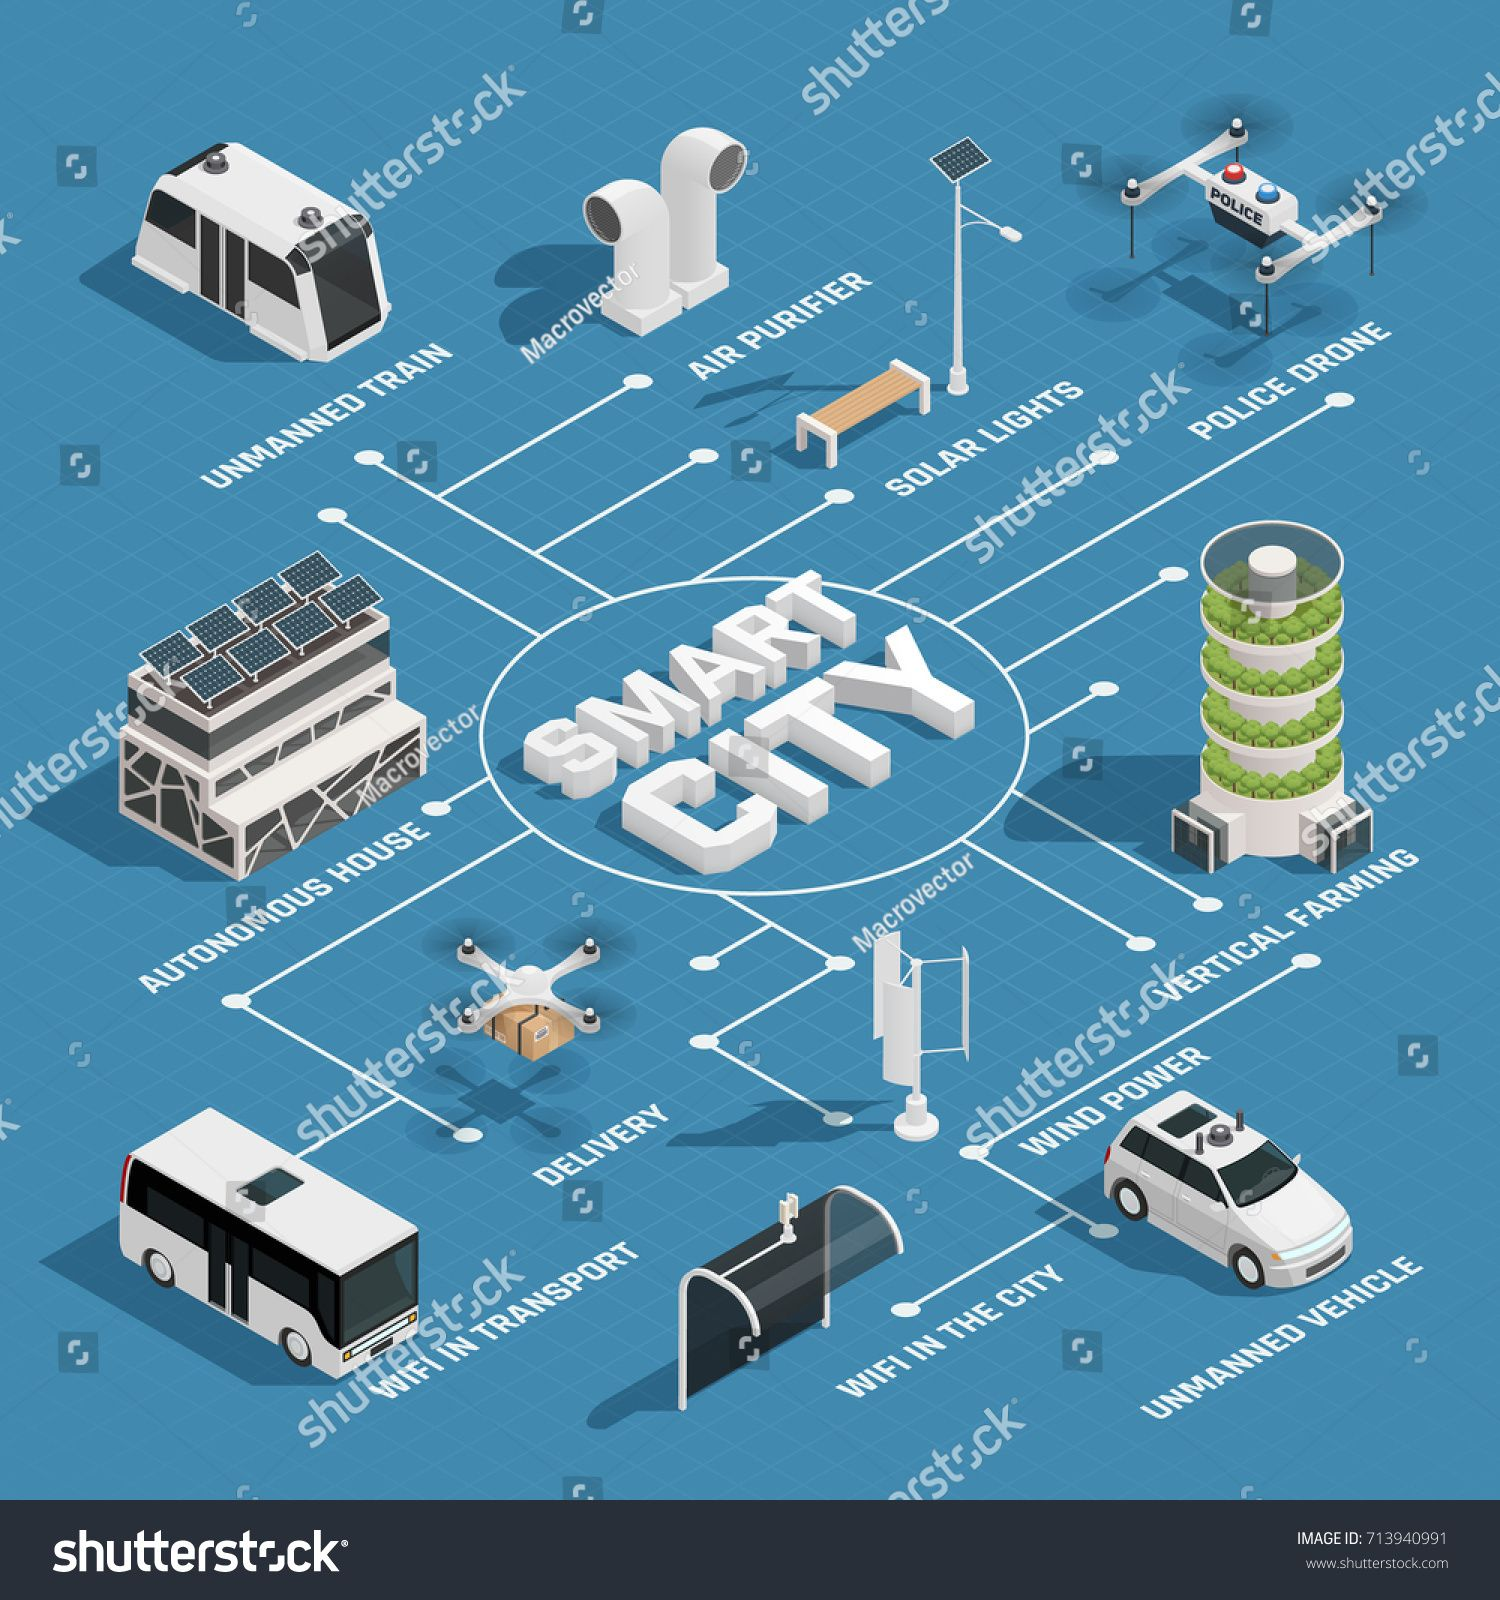 Smart City Technology Isometric Flowchart With Sustainable Energy Sources Unmanned Vehicles Police And Delive Smart City Isometric Design Smart Home Technology